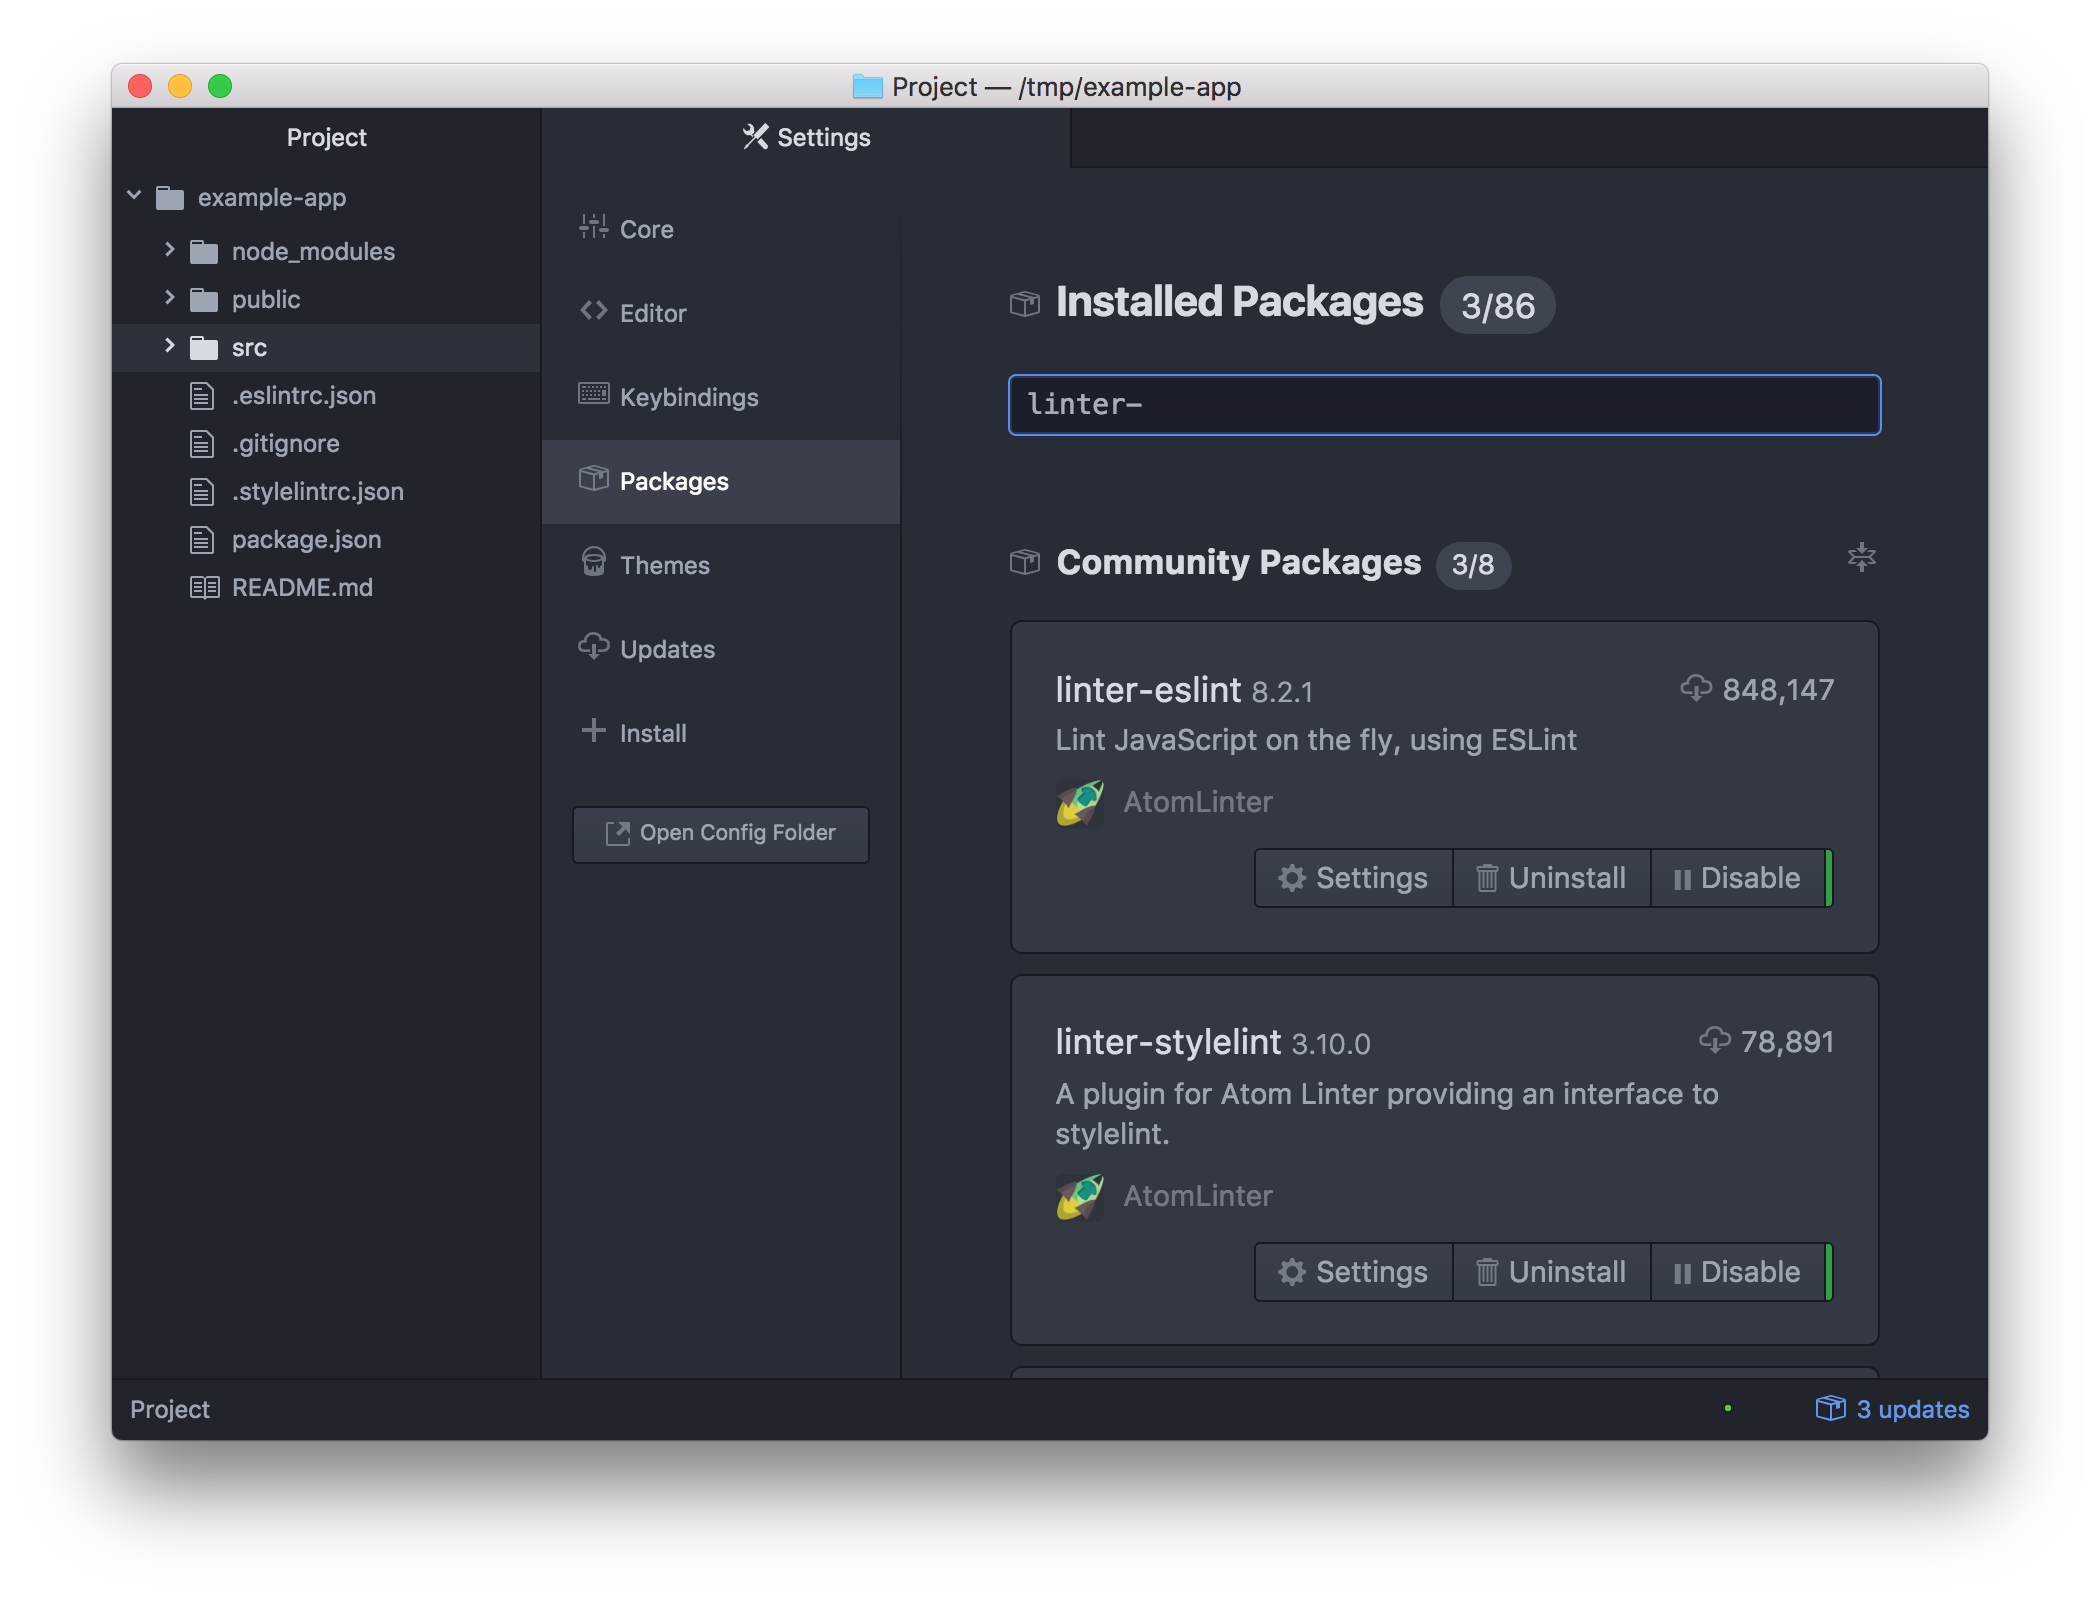 Linter packages in Atom